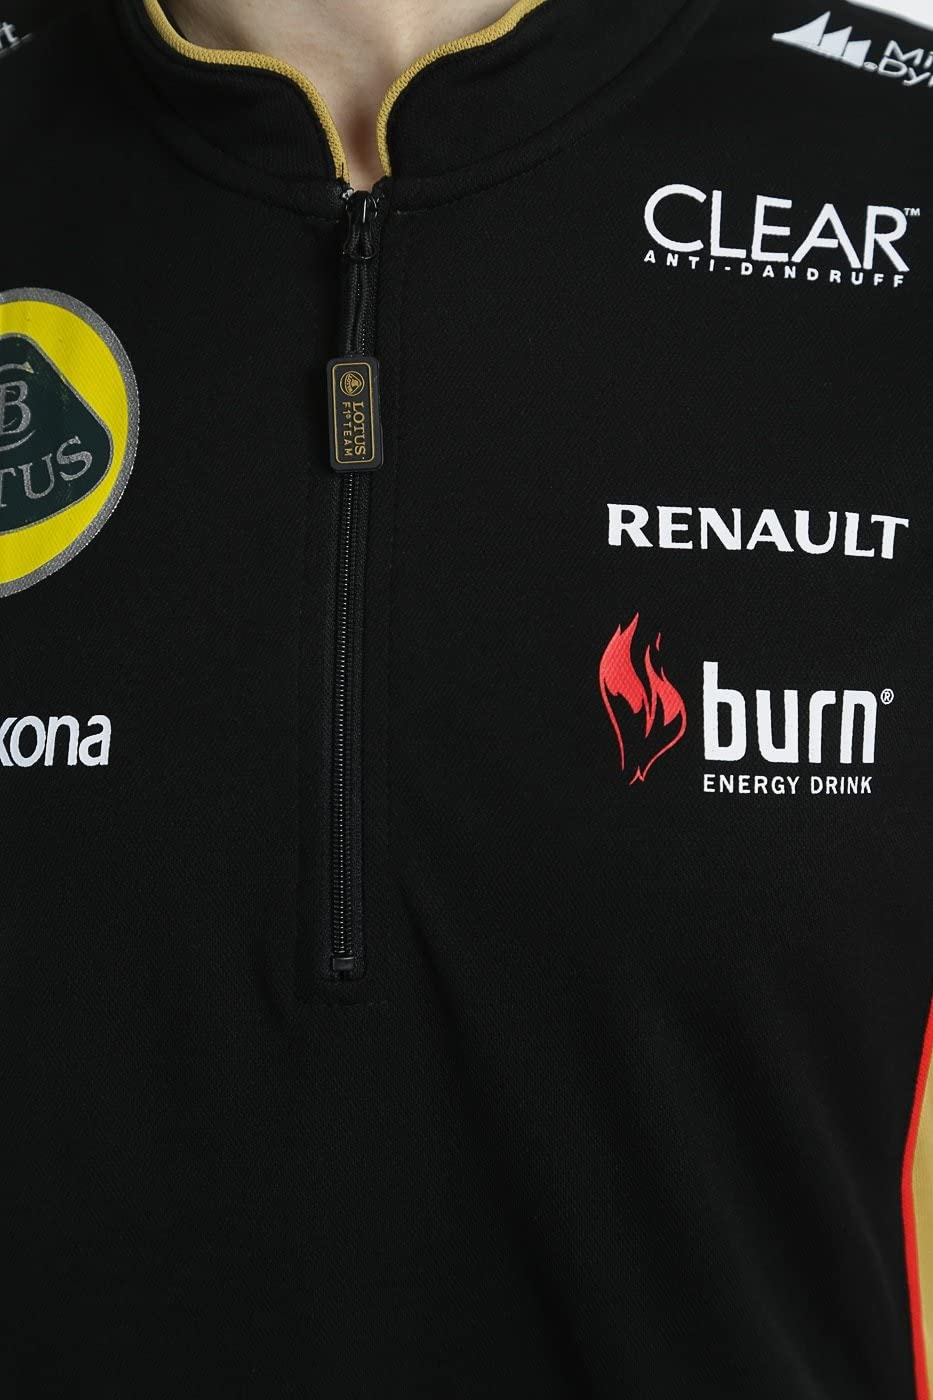 Lotus F1 Team patrocinadores Ladies 2013 Burn cremallera Polo ...